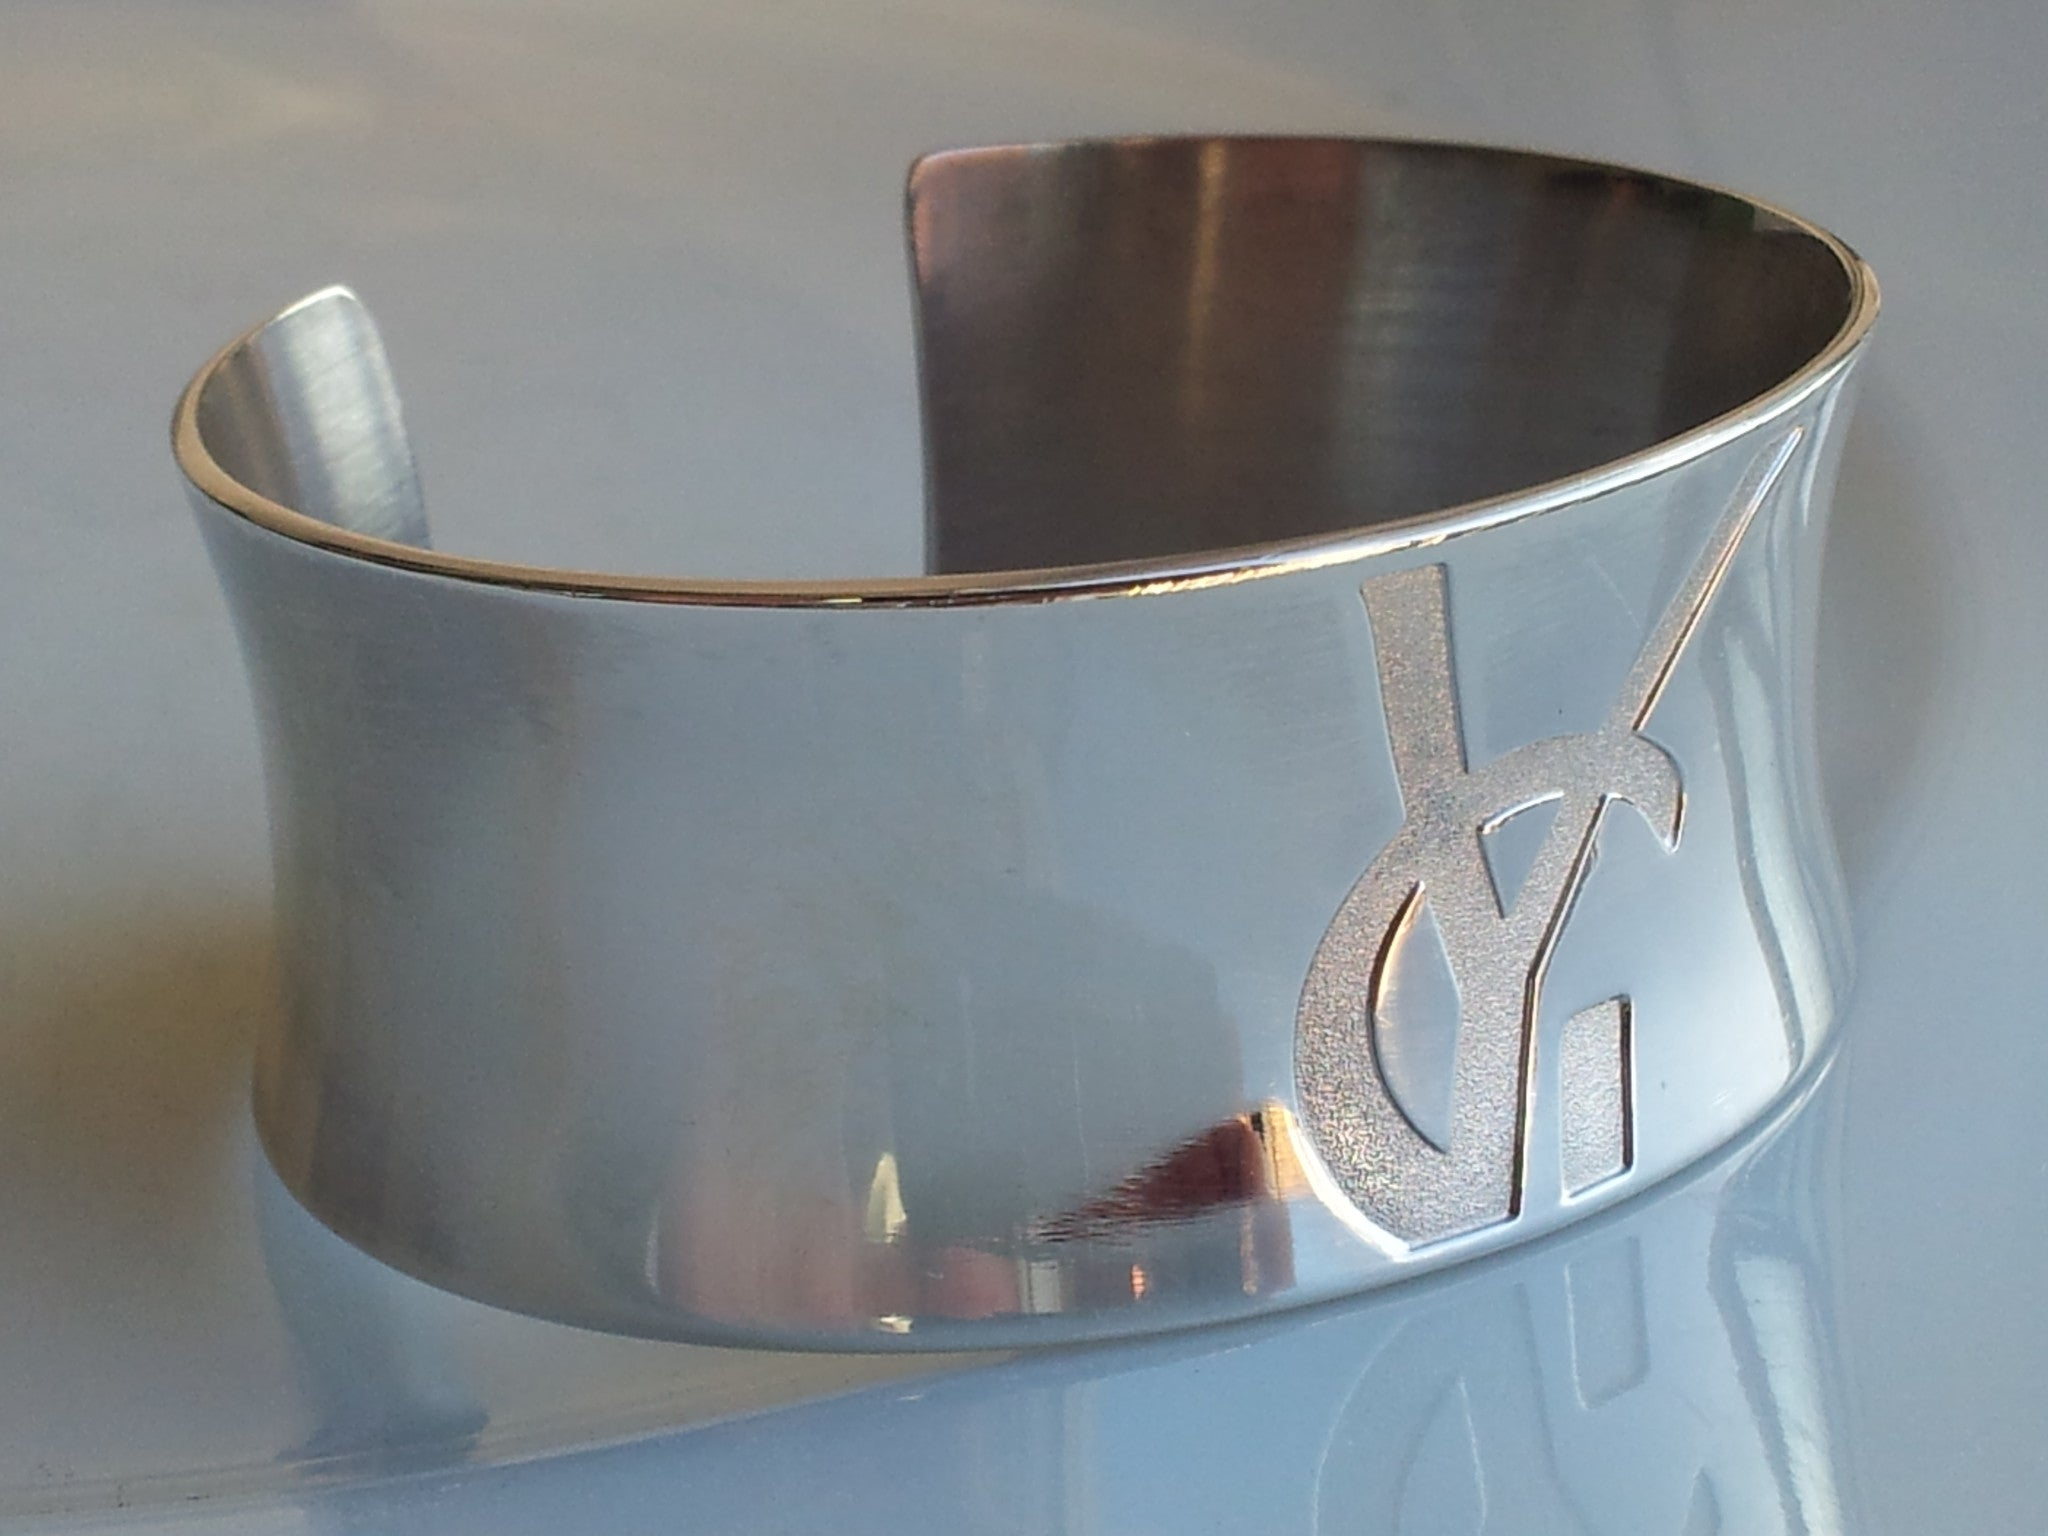 9600d8cfe39 Rare Vintage Yves Saint Laurent YSL Logo Sterling Silver Cuff Bangle B -  Bloomsbury Manor Ltd